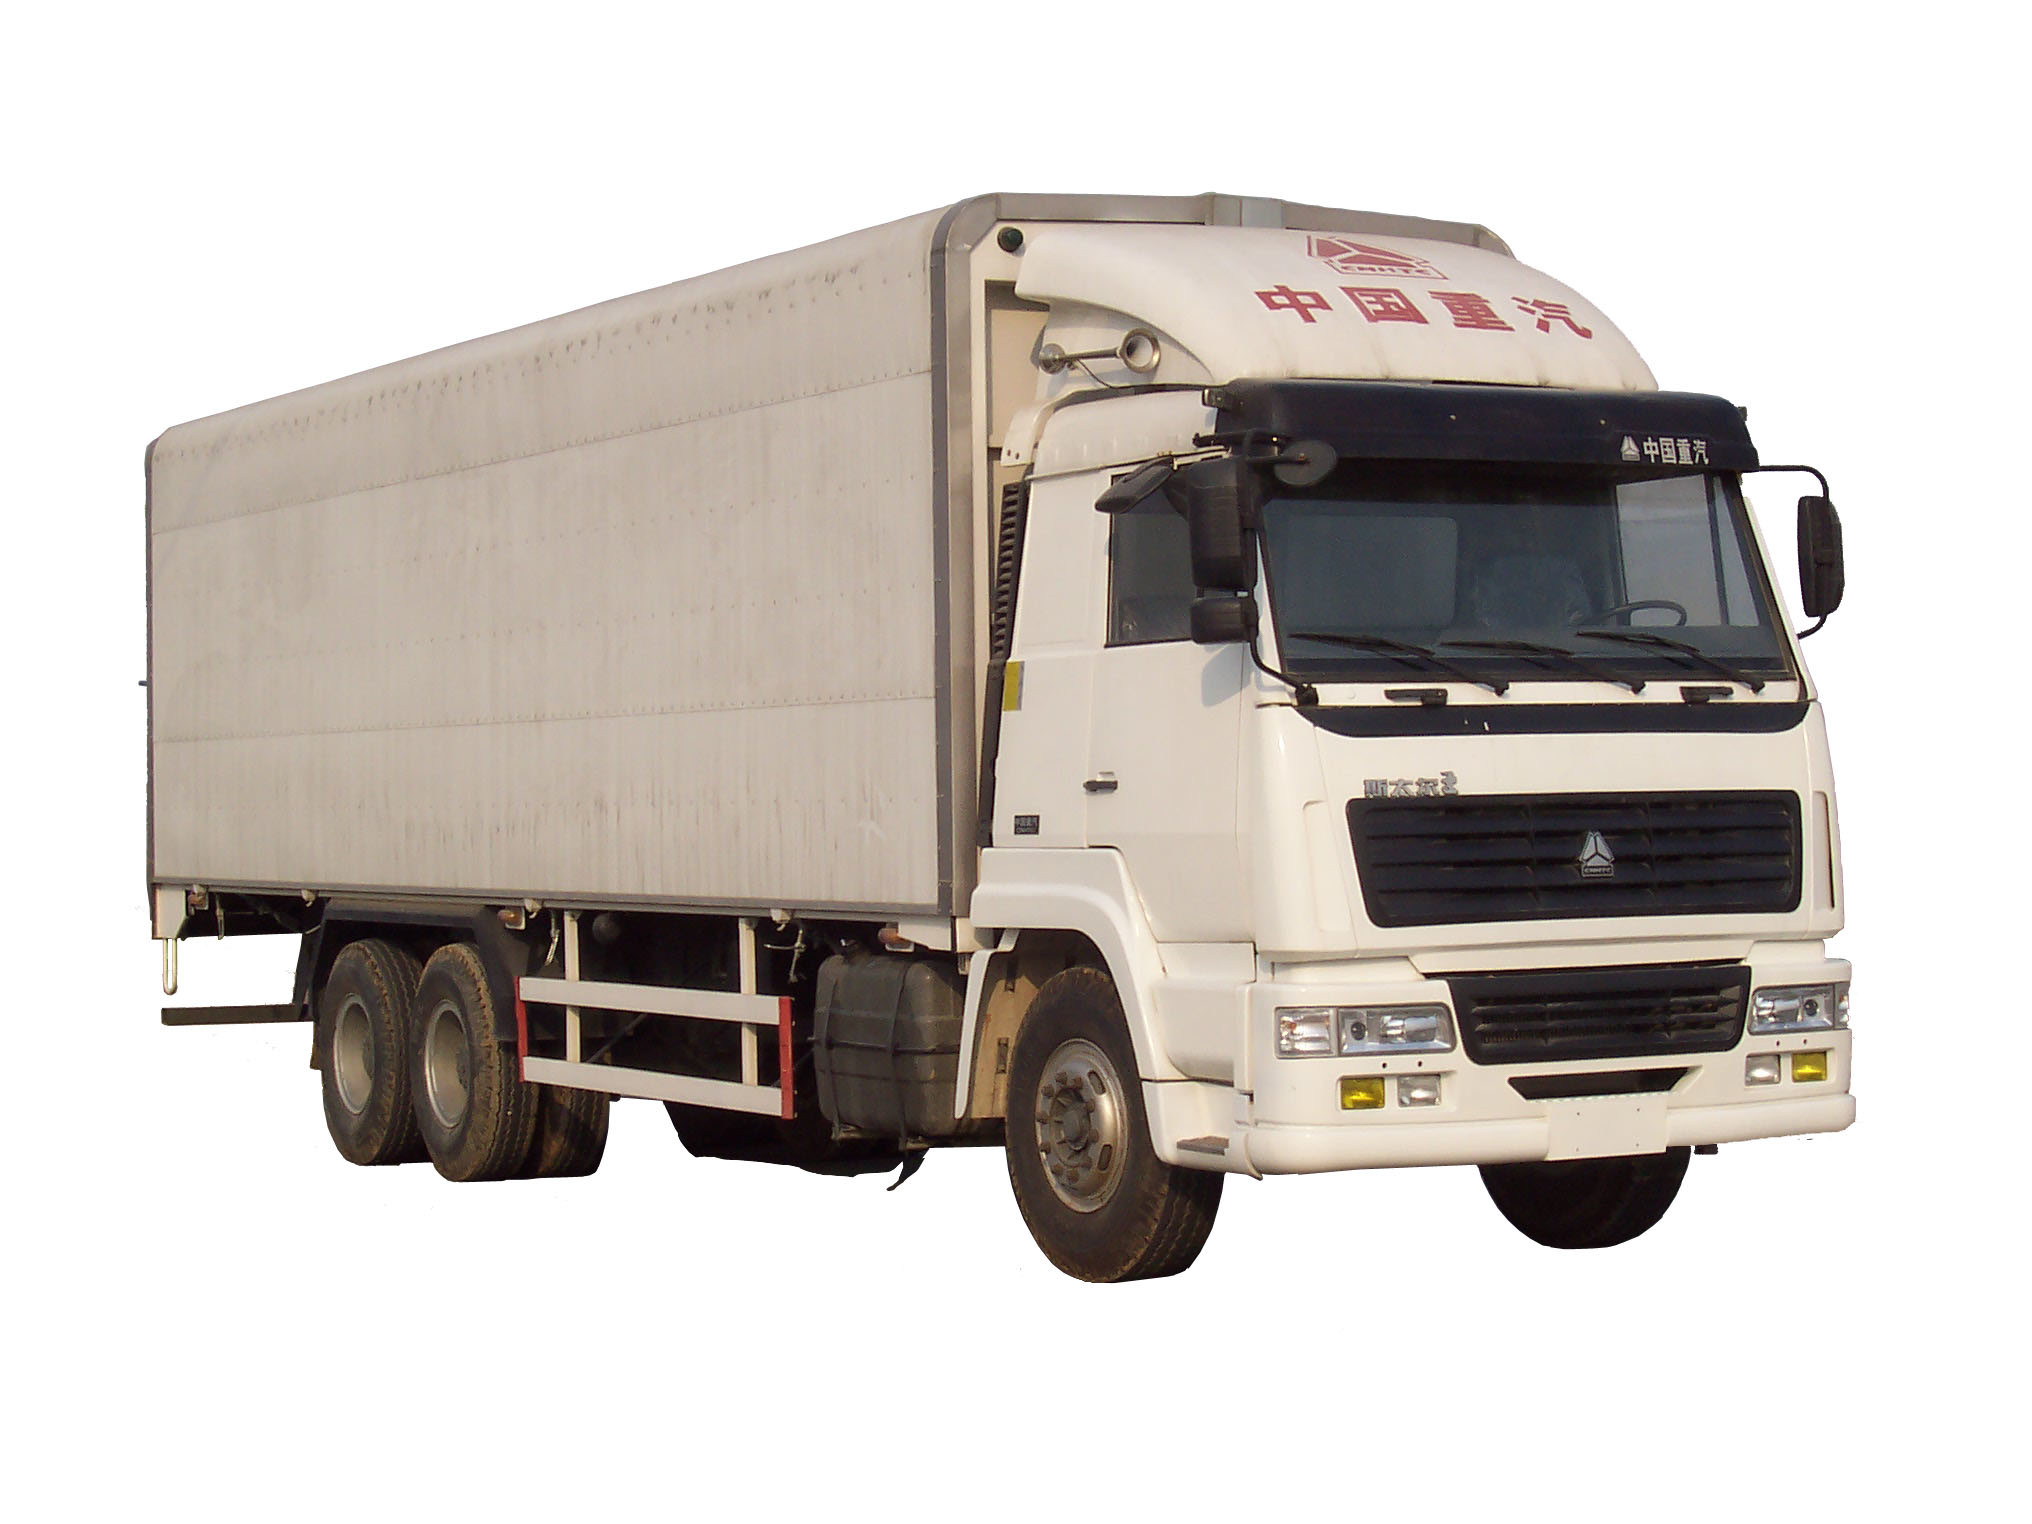 China Container Truck - China Container Truck, Cargo Carrier